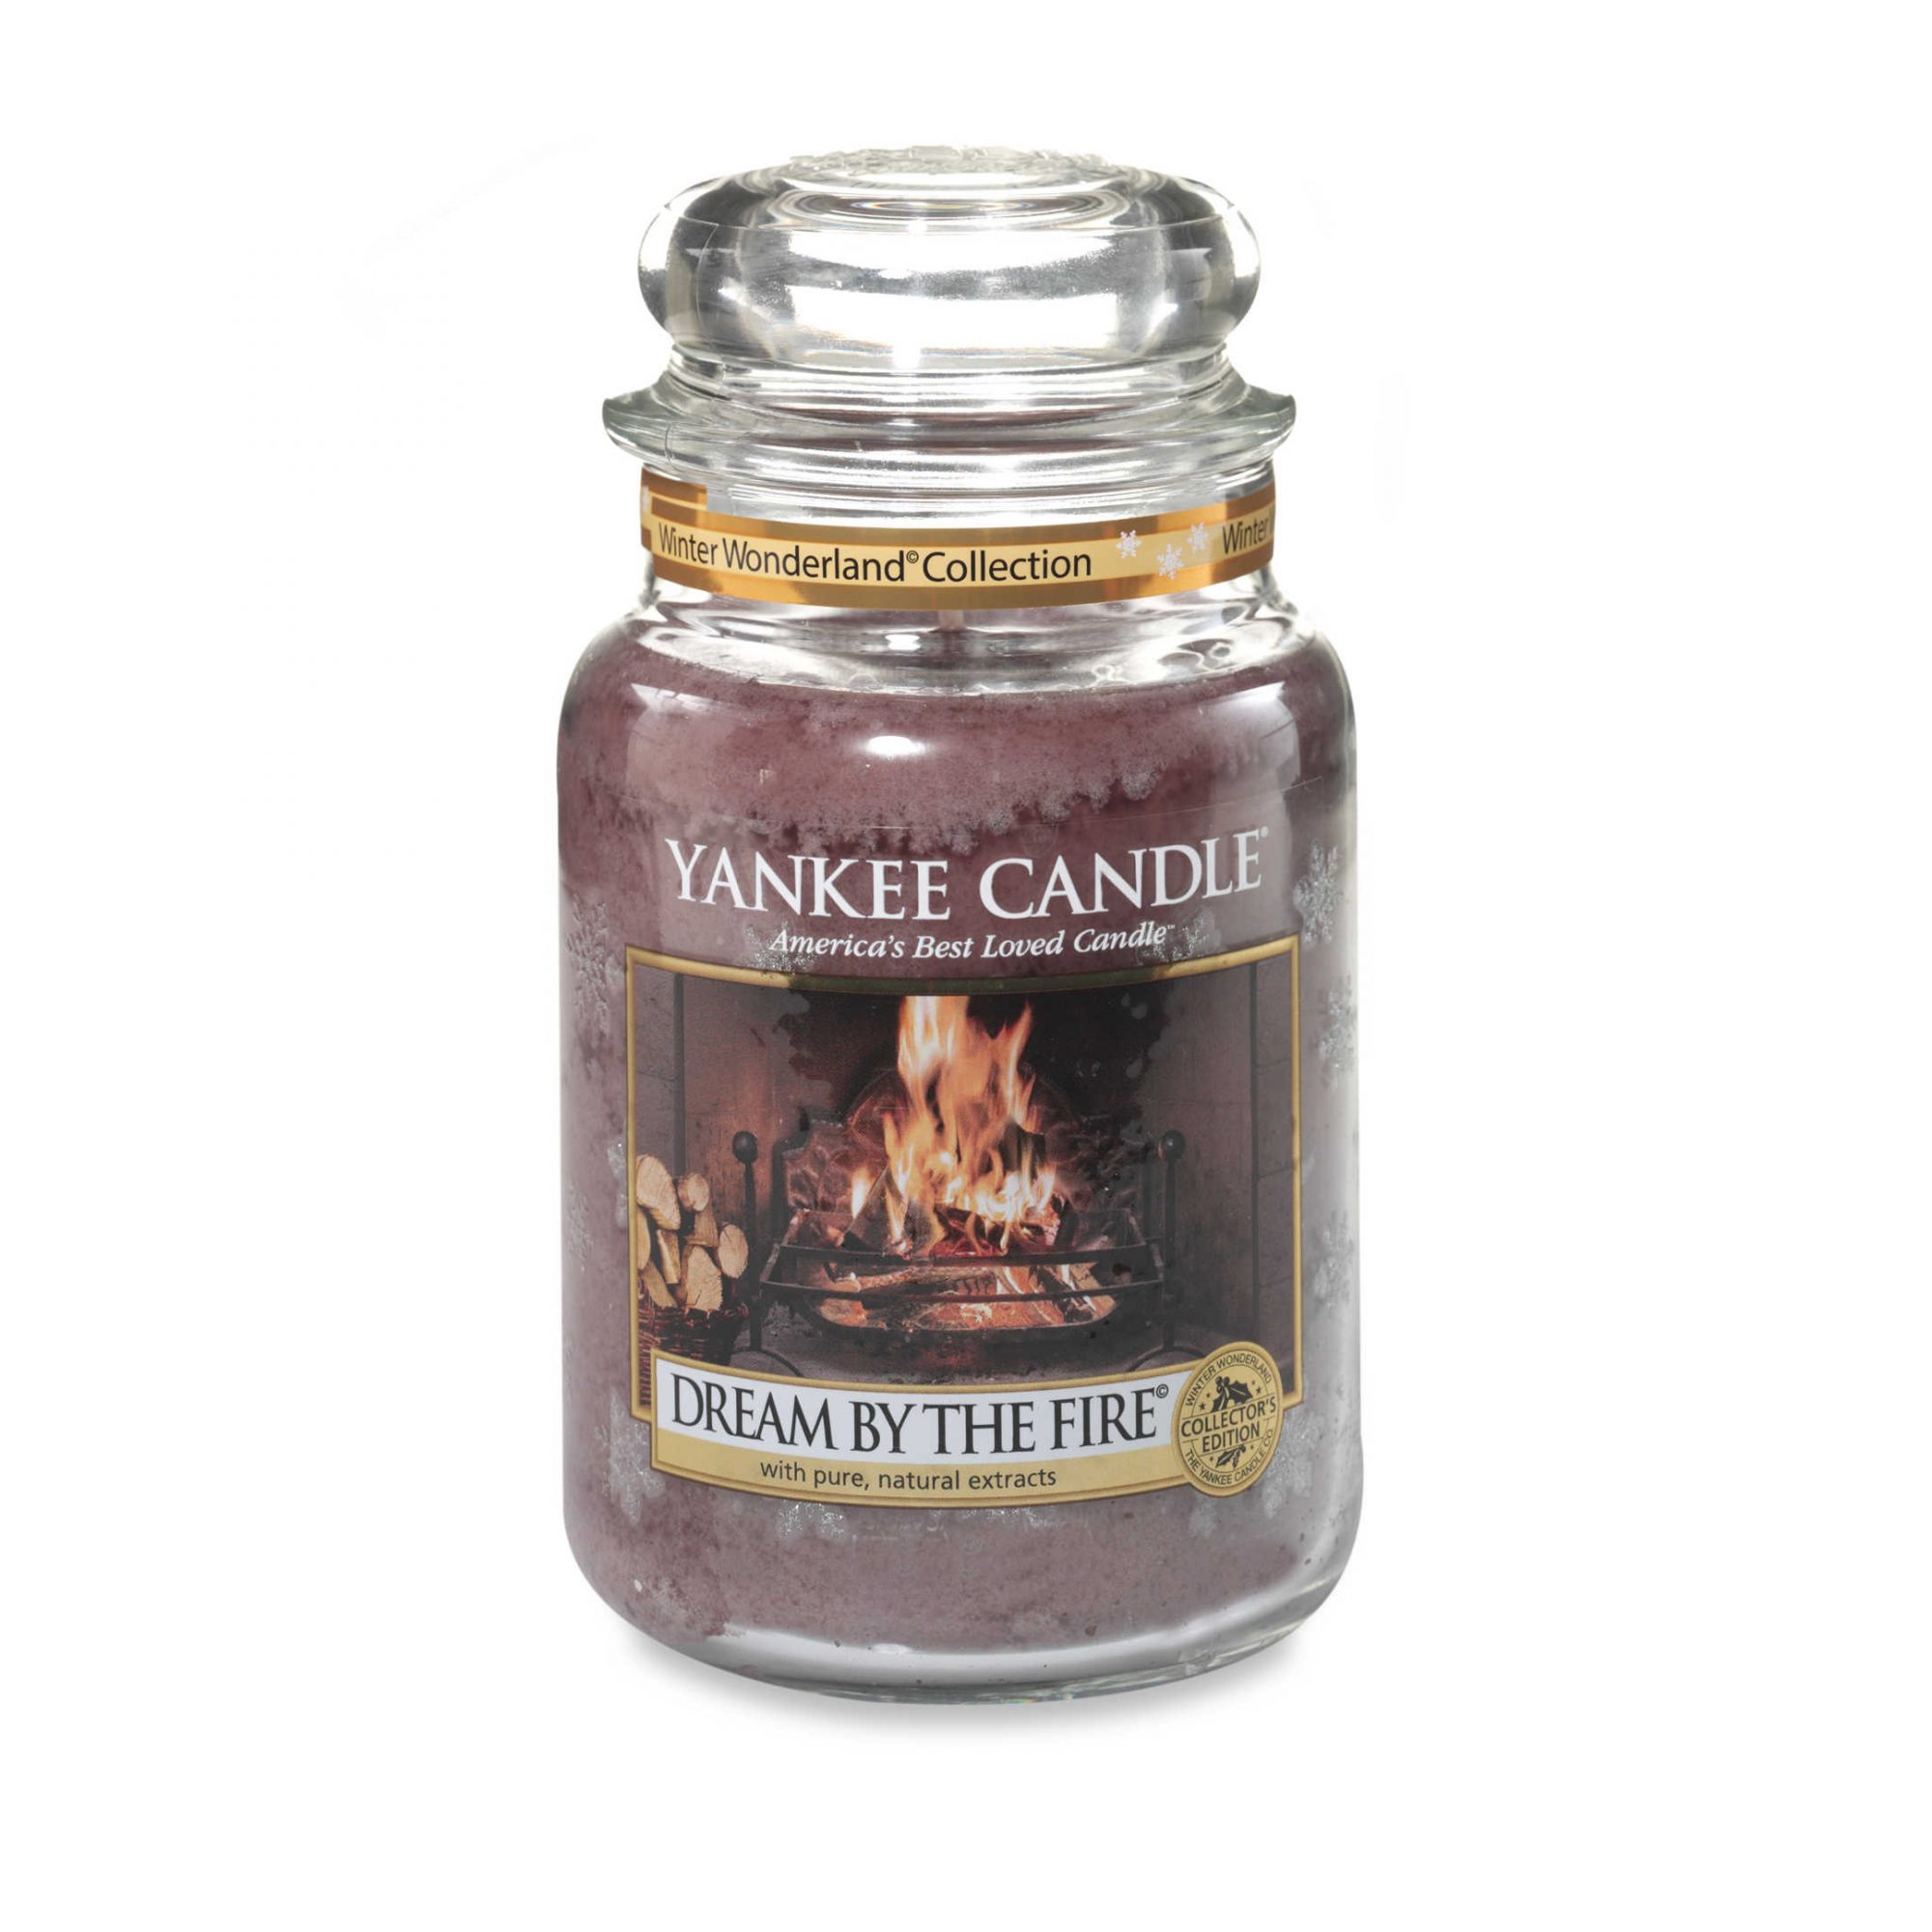 Yankee Candle Christmas Dream by the Fire Jar Candle